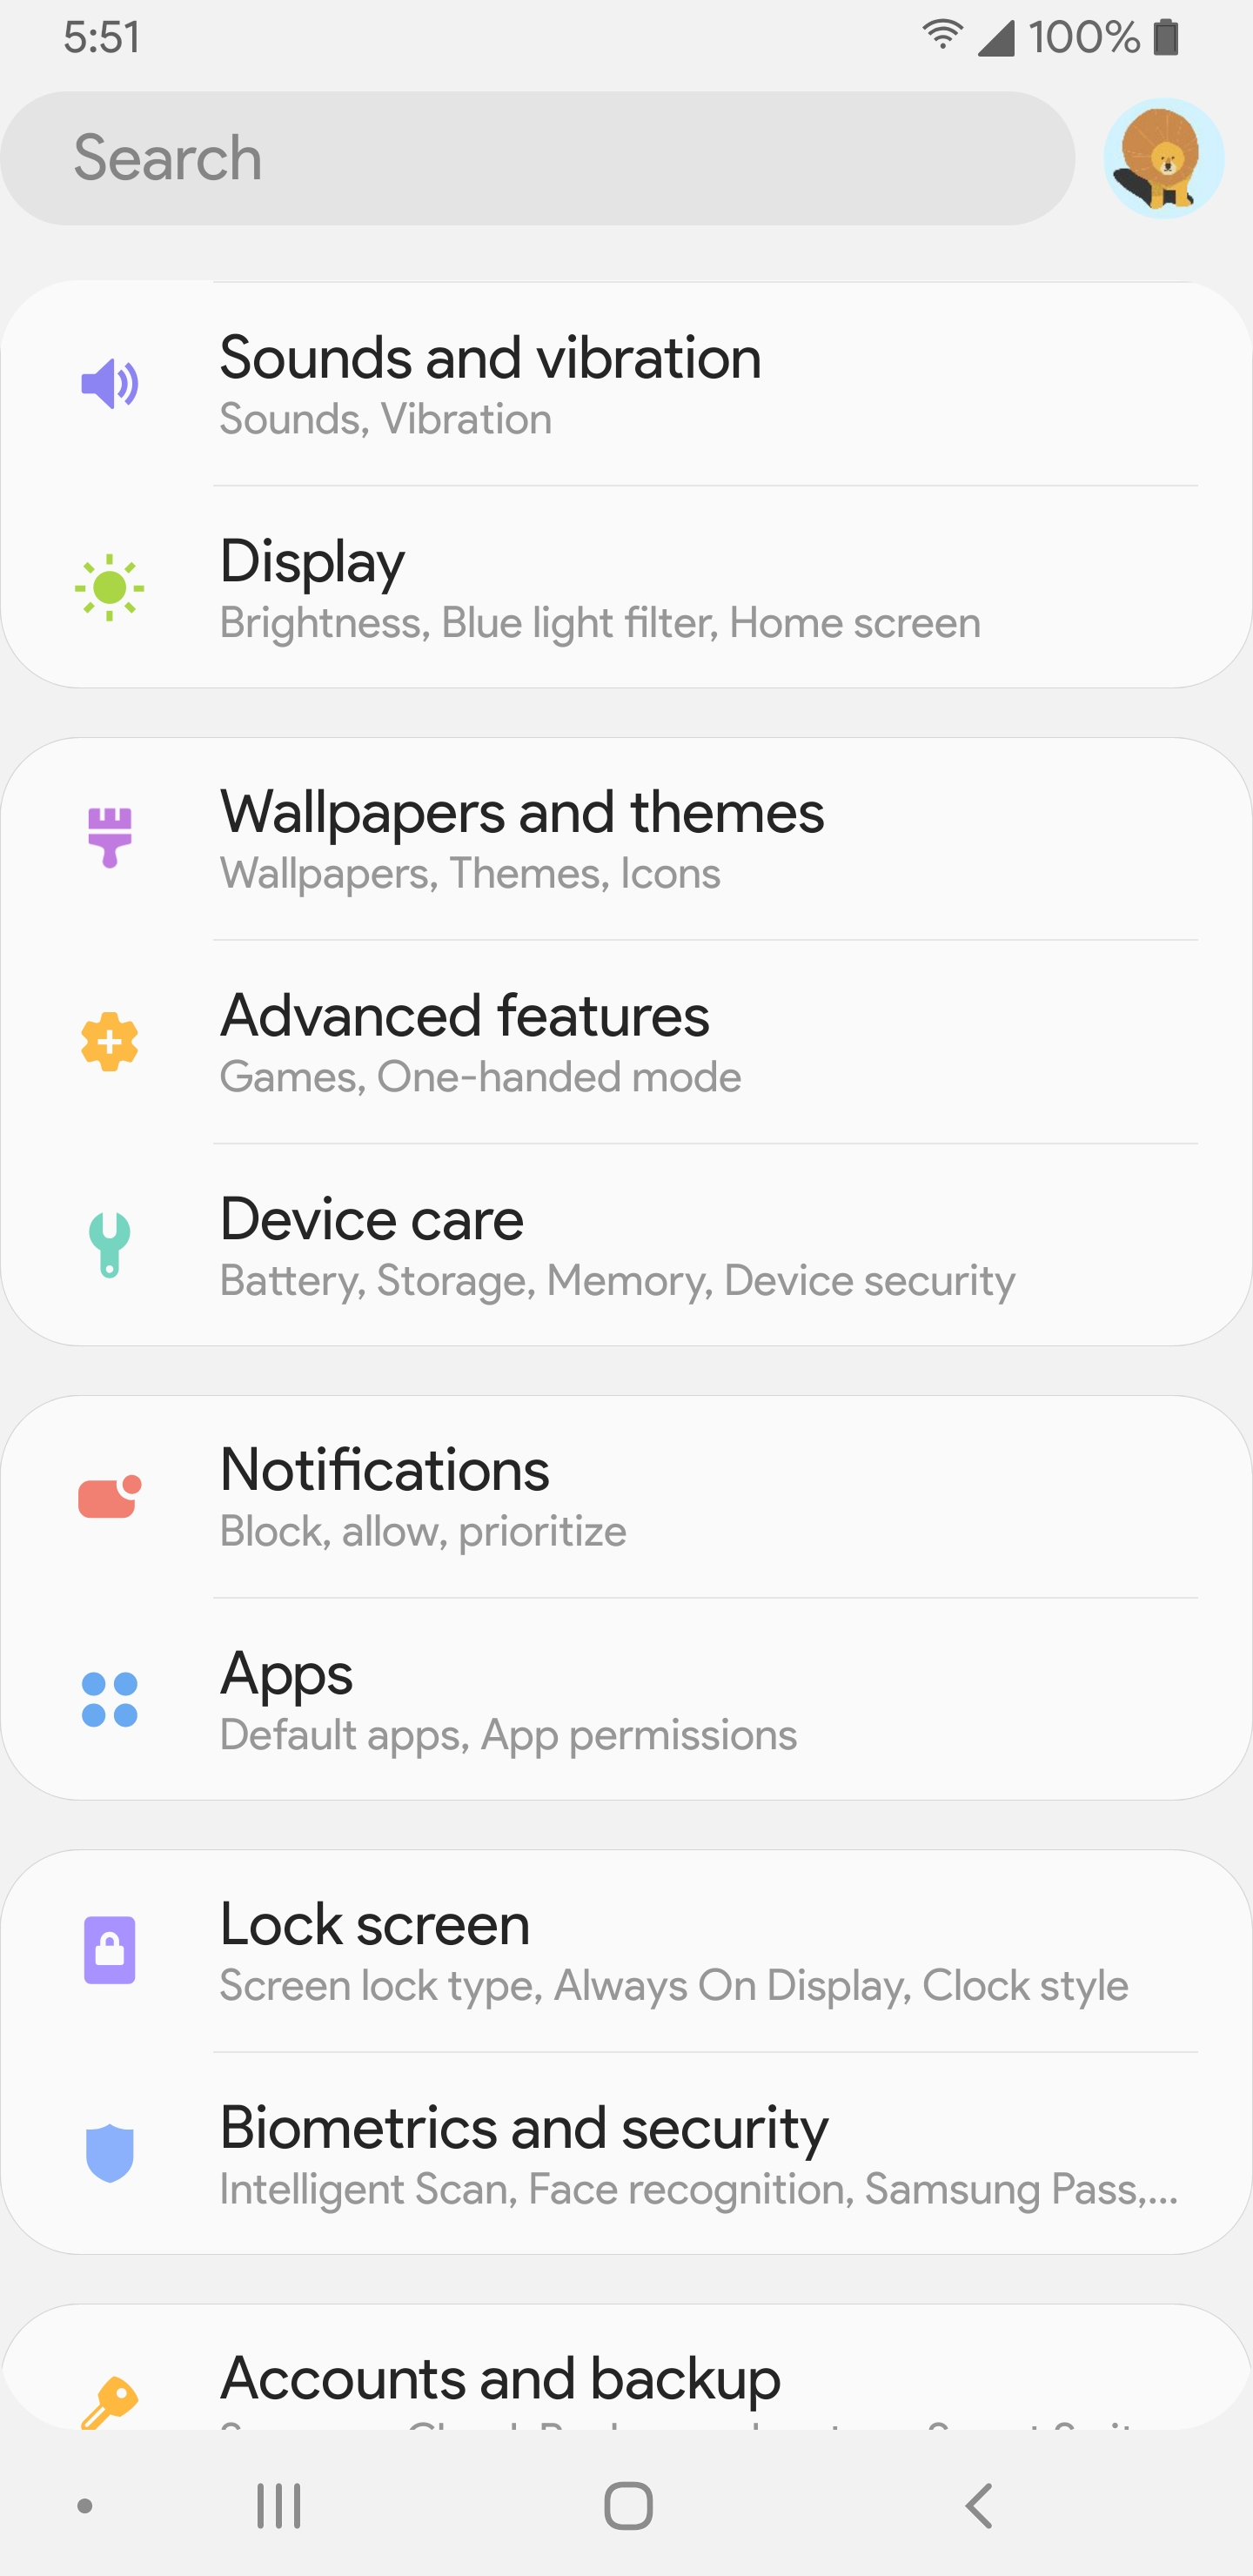 Samsung Android Pie: Another look at Galaxy S9+ beta build